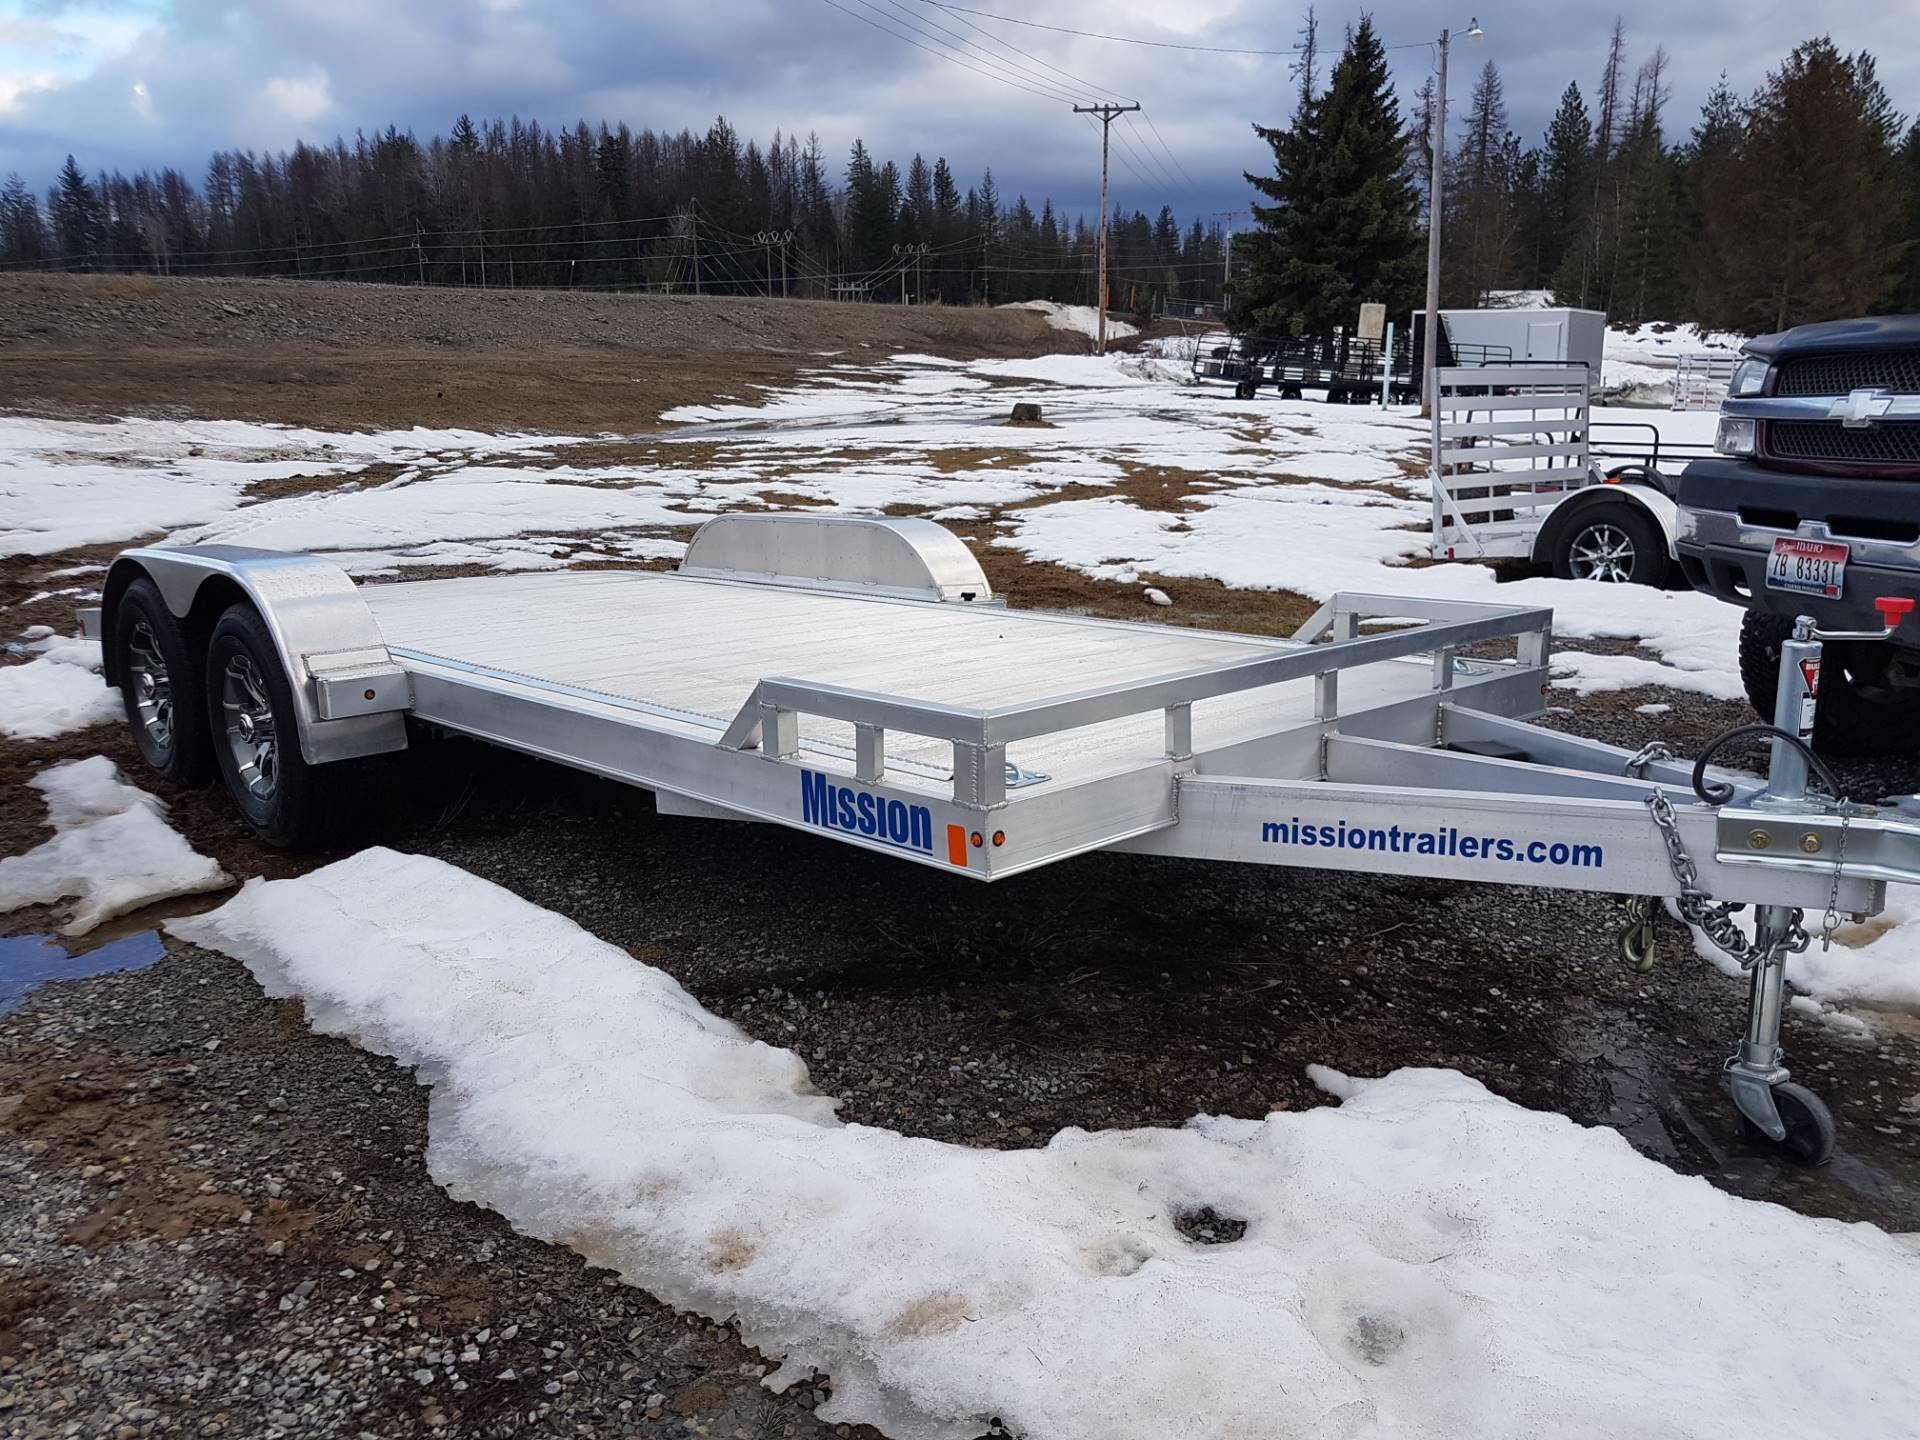 2017 Mission Trailers Aluminum Car Hauler Trailers (MOCH 8 x 18) in Sandpoint, Idaho